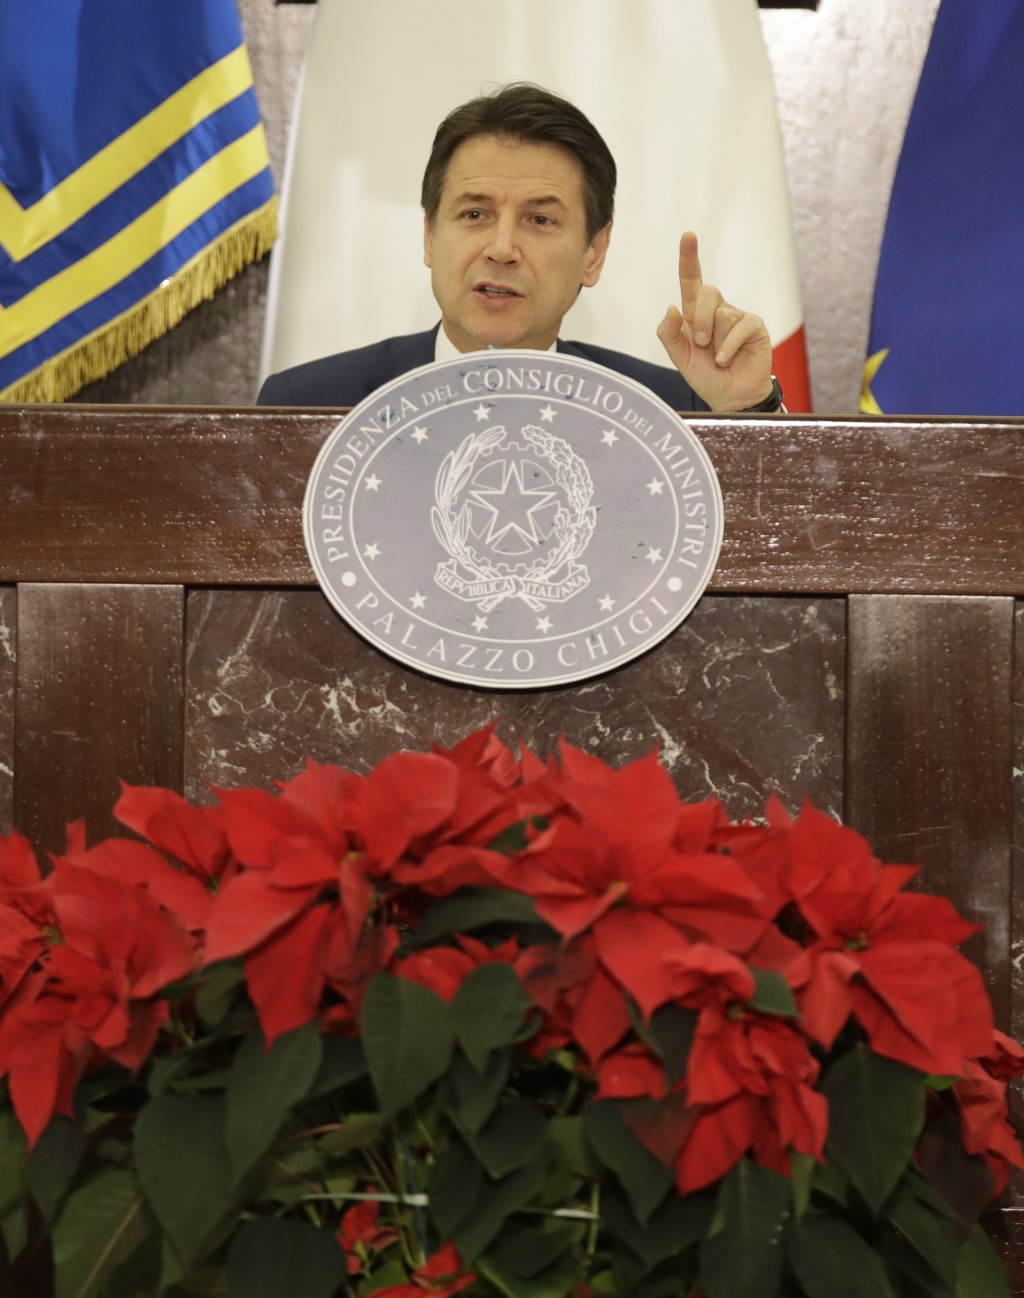 Italian premier Giuseppe Conte talks to reporters during a press conference in Rome, Italy, Friday, Dec.28, 2018. (AP Photo/Alessandra Tarantino)